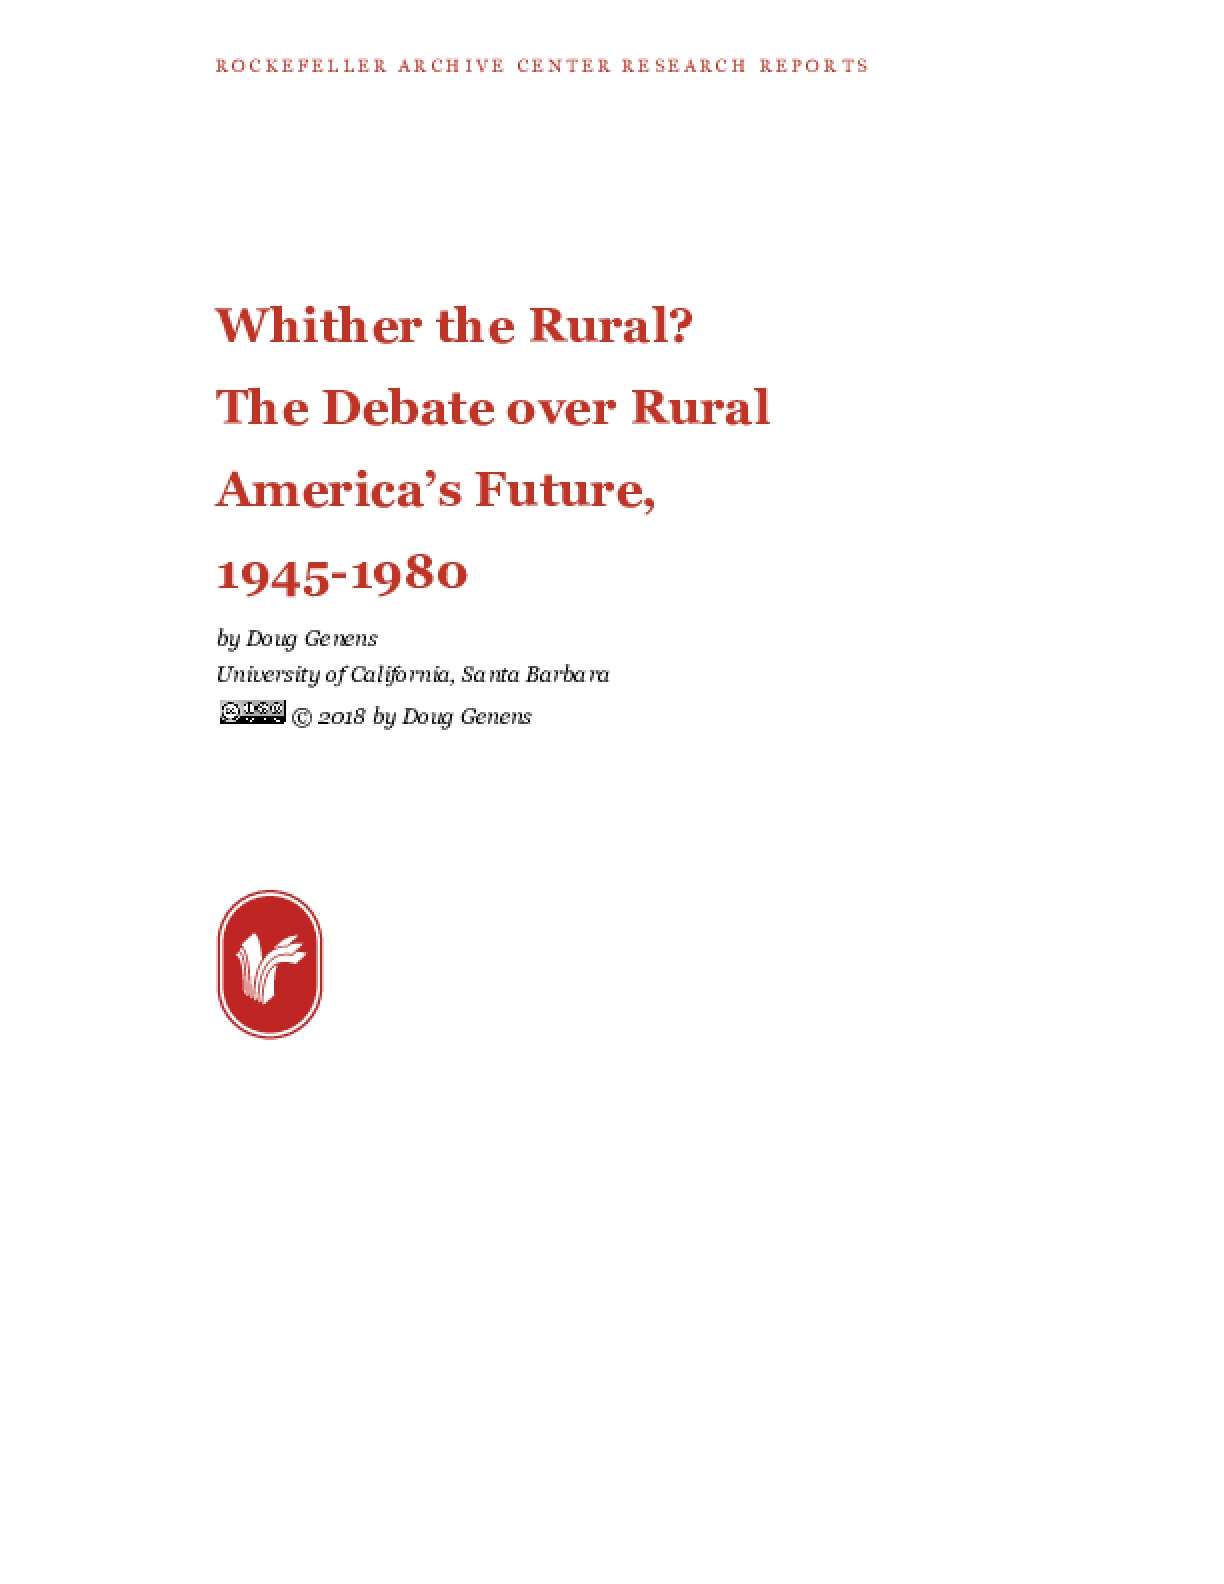 Whither the Rural? The Debate over Rural America's Future, 1945-1980